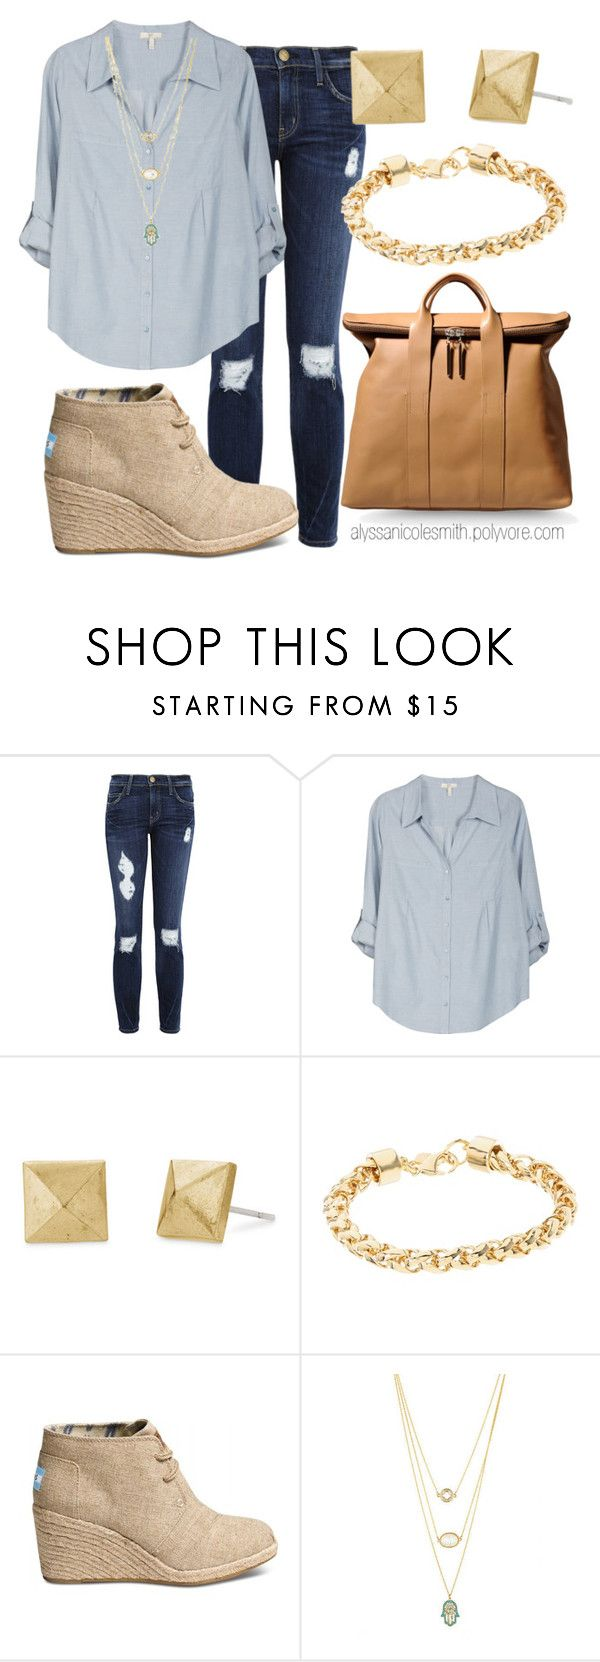 """Casual Sunday Outfit"" by alyssanicolesmith ❤ liked on Polyvore featuring Current/Elliott, Joie, Stella & Dot, Kate Spade, TOMS and 3.1 Phillip Lim"